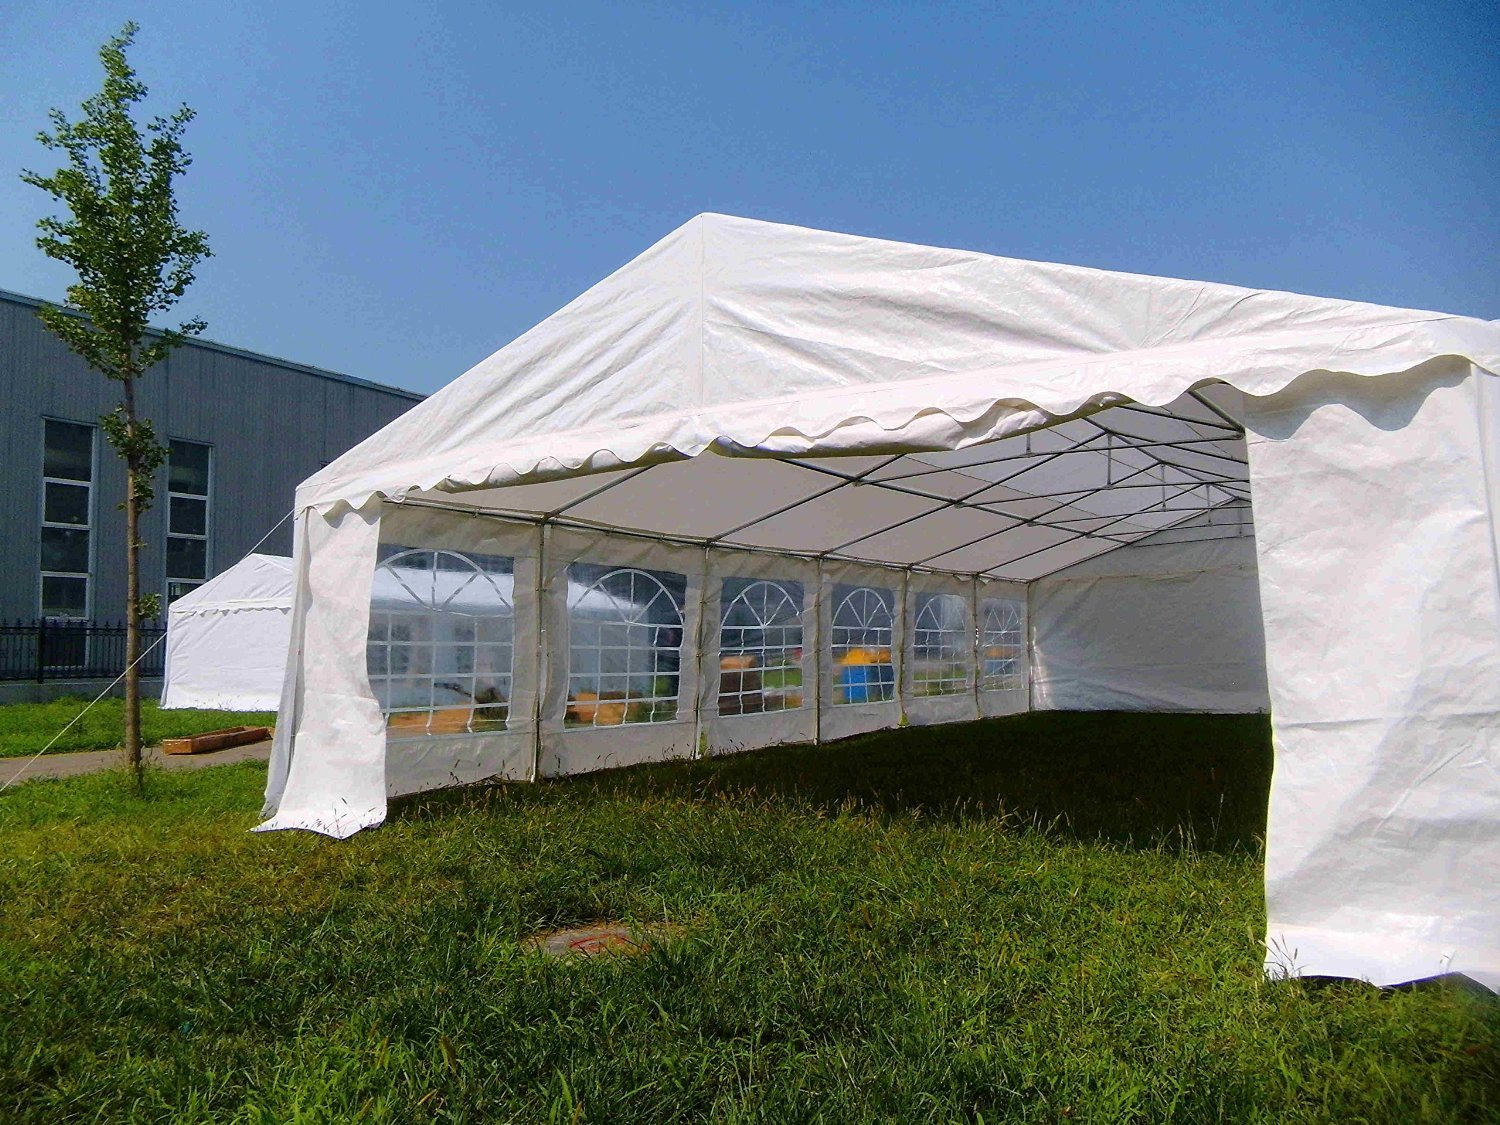 Amazon.com  OTLIVE 40x20 ft Wedding Tent Party Easy Gazebo Steel Frame Commercial Canopy Pop Up White Tent  Garden u0026 Outdoor & Amazon.com : OTLIVE 40x20 ft Wedding Tent Party Easy Gazebo Steel ...